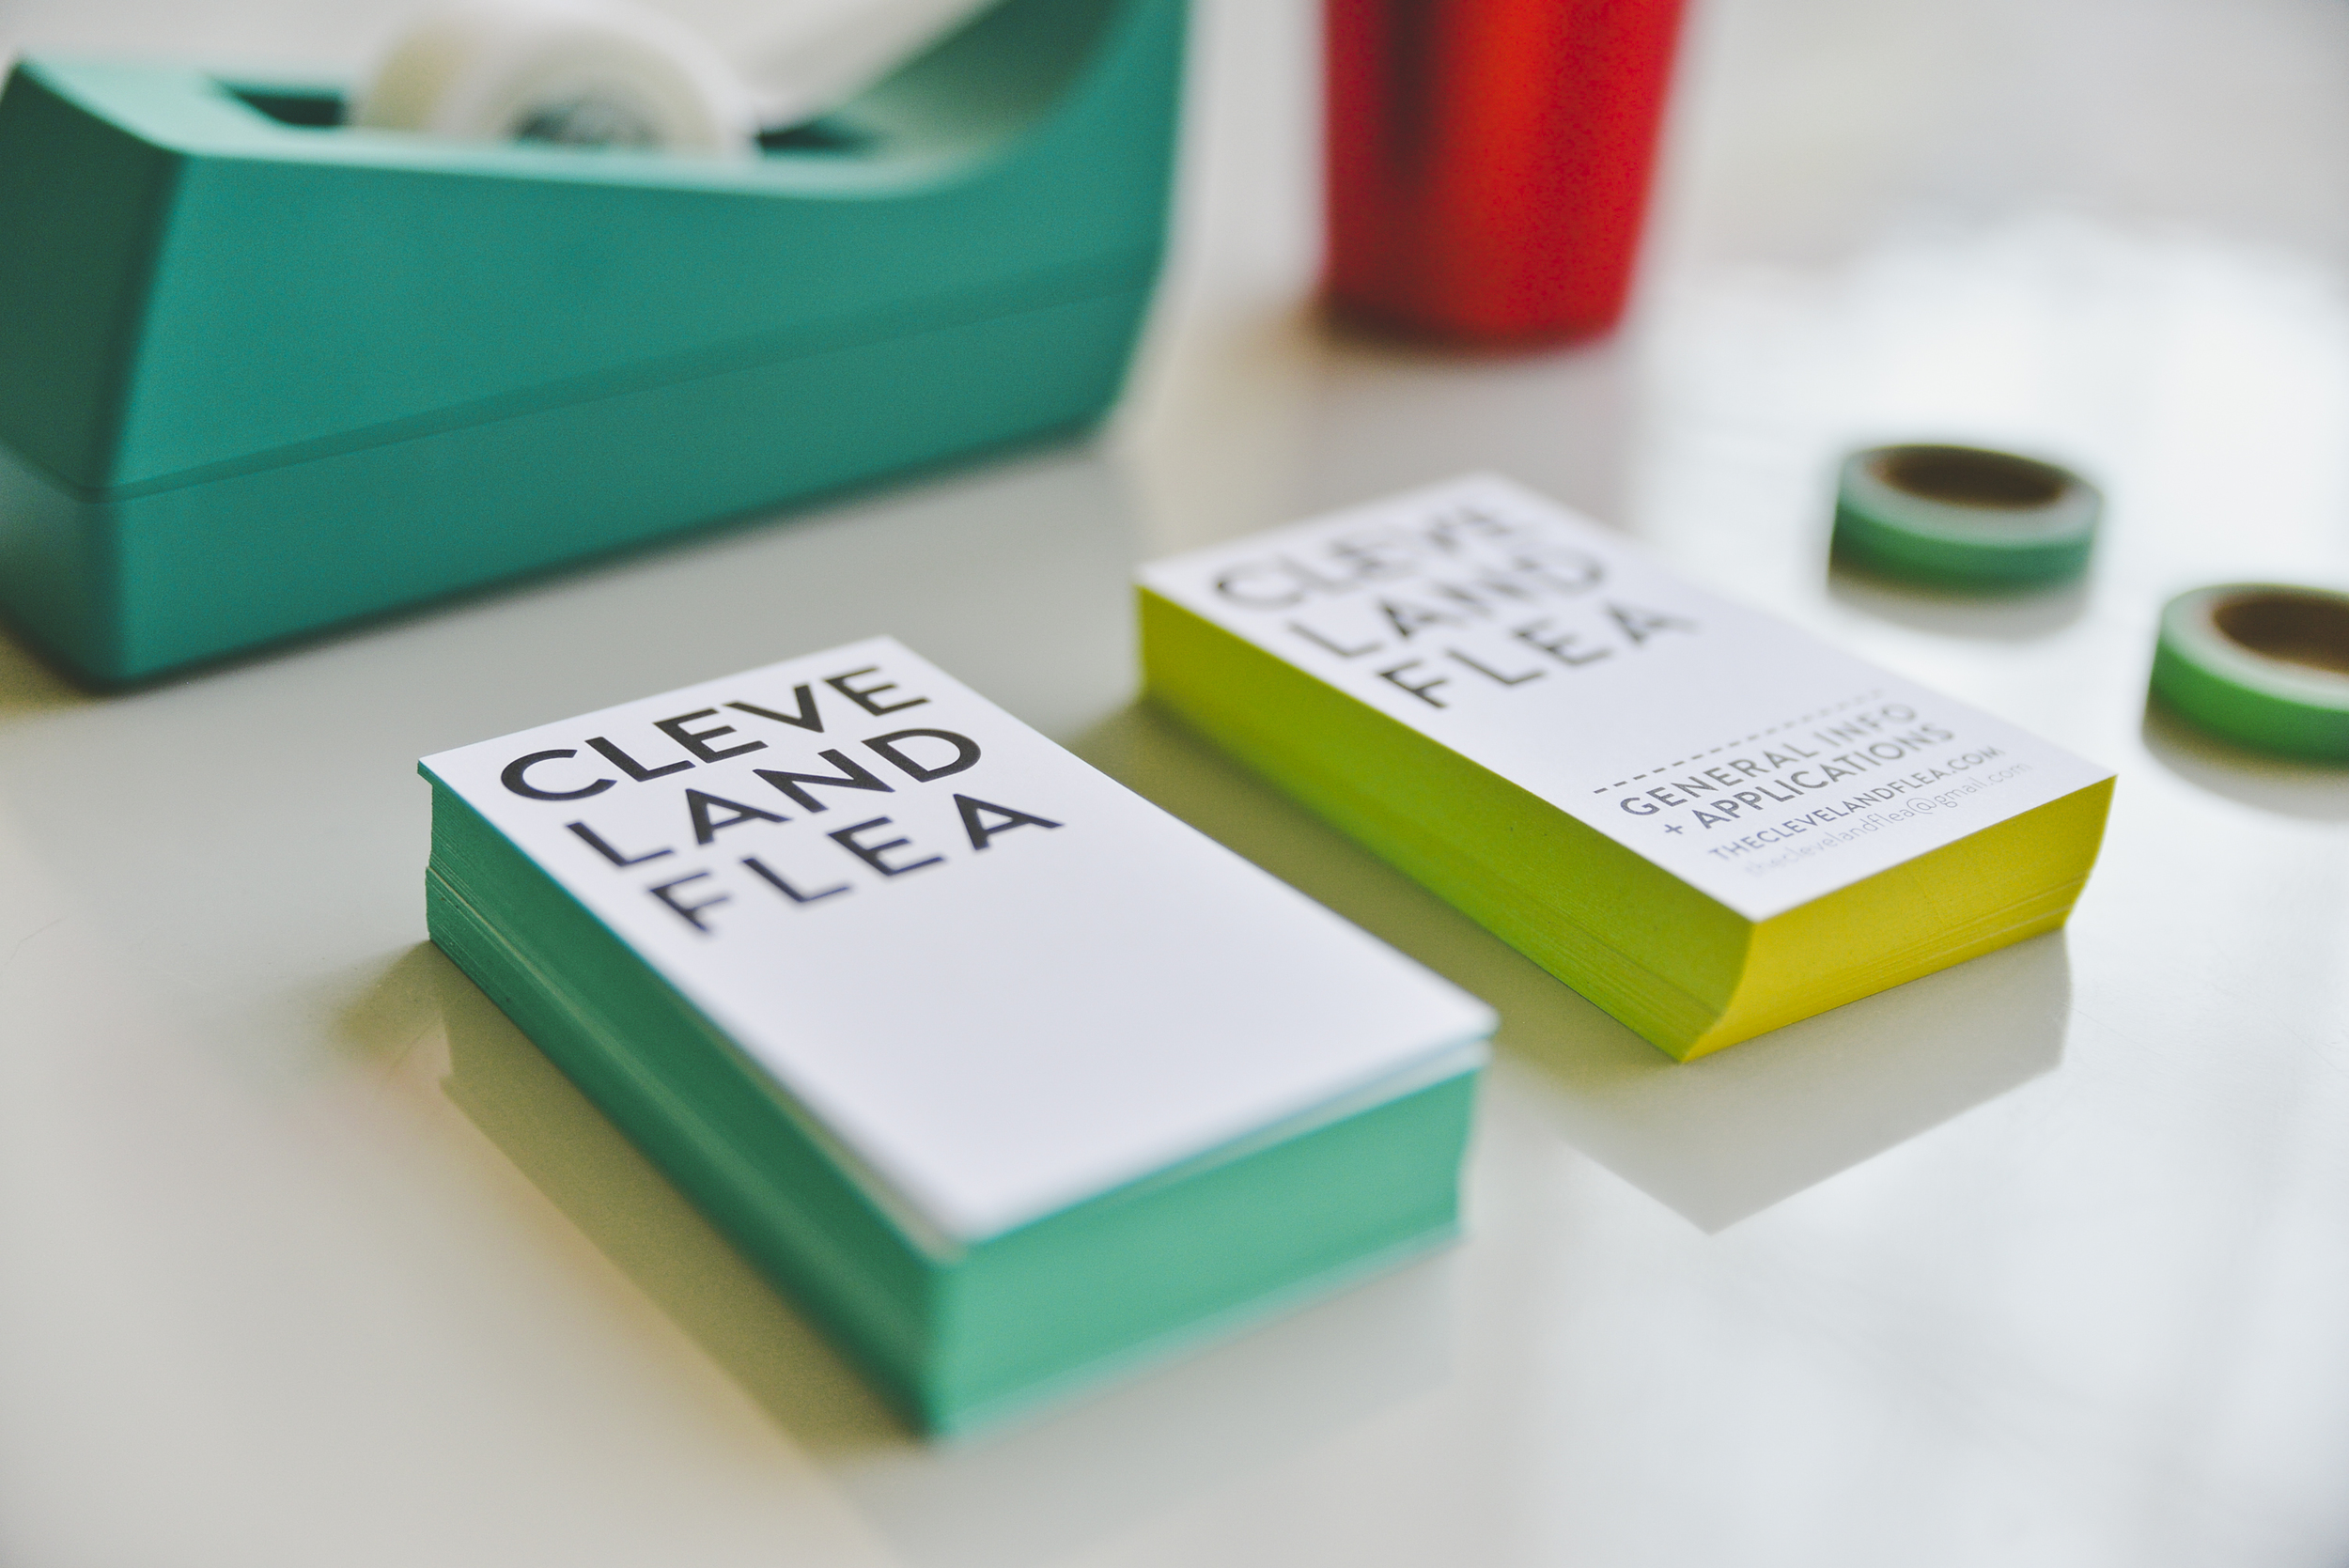 Our Team Flea Biz Cards. All the employees have their own color.  SPEC:12 pt. Uncoated Card Stock Business Cards with painted edges.